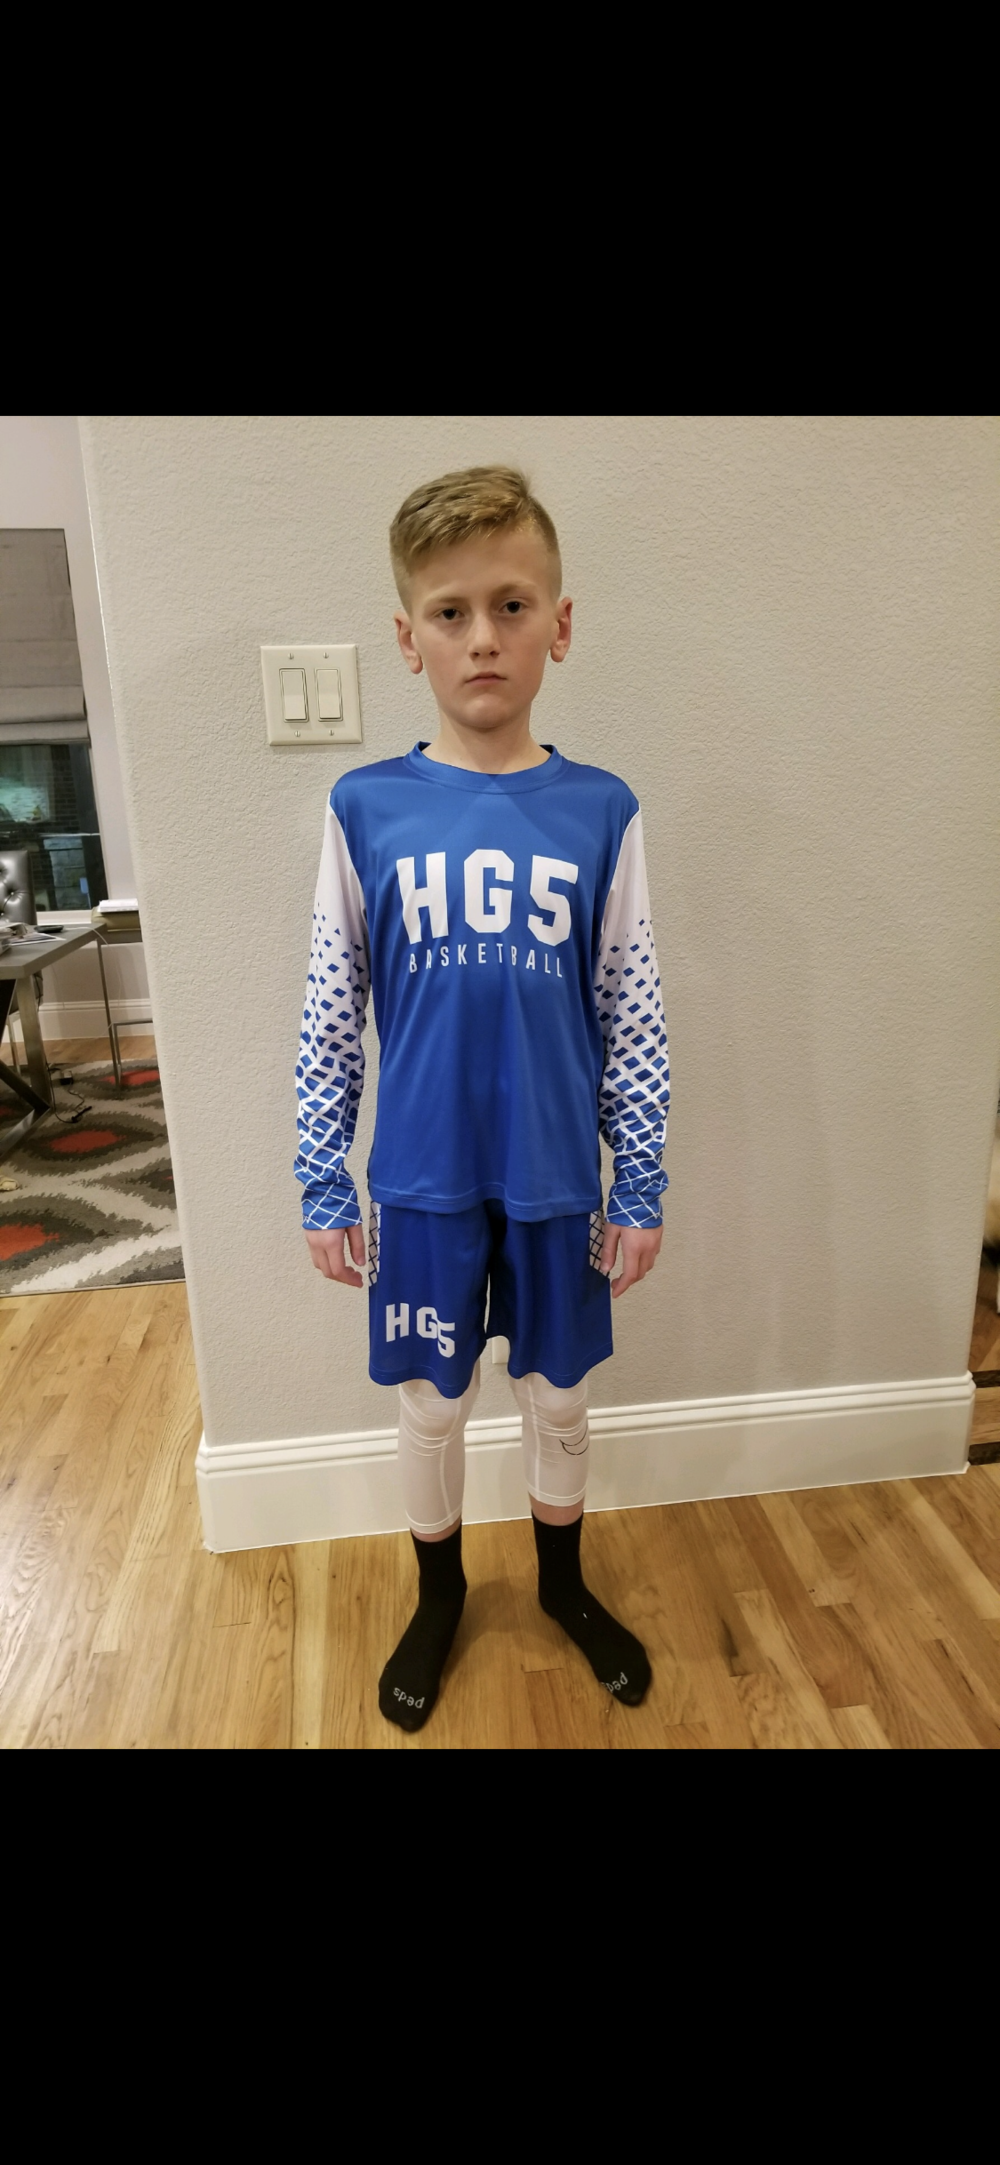 HG5 Blue and White Basketball Jersey and Short